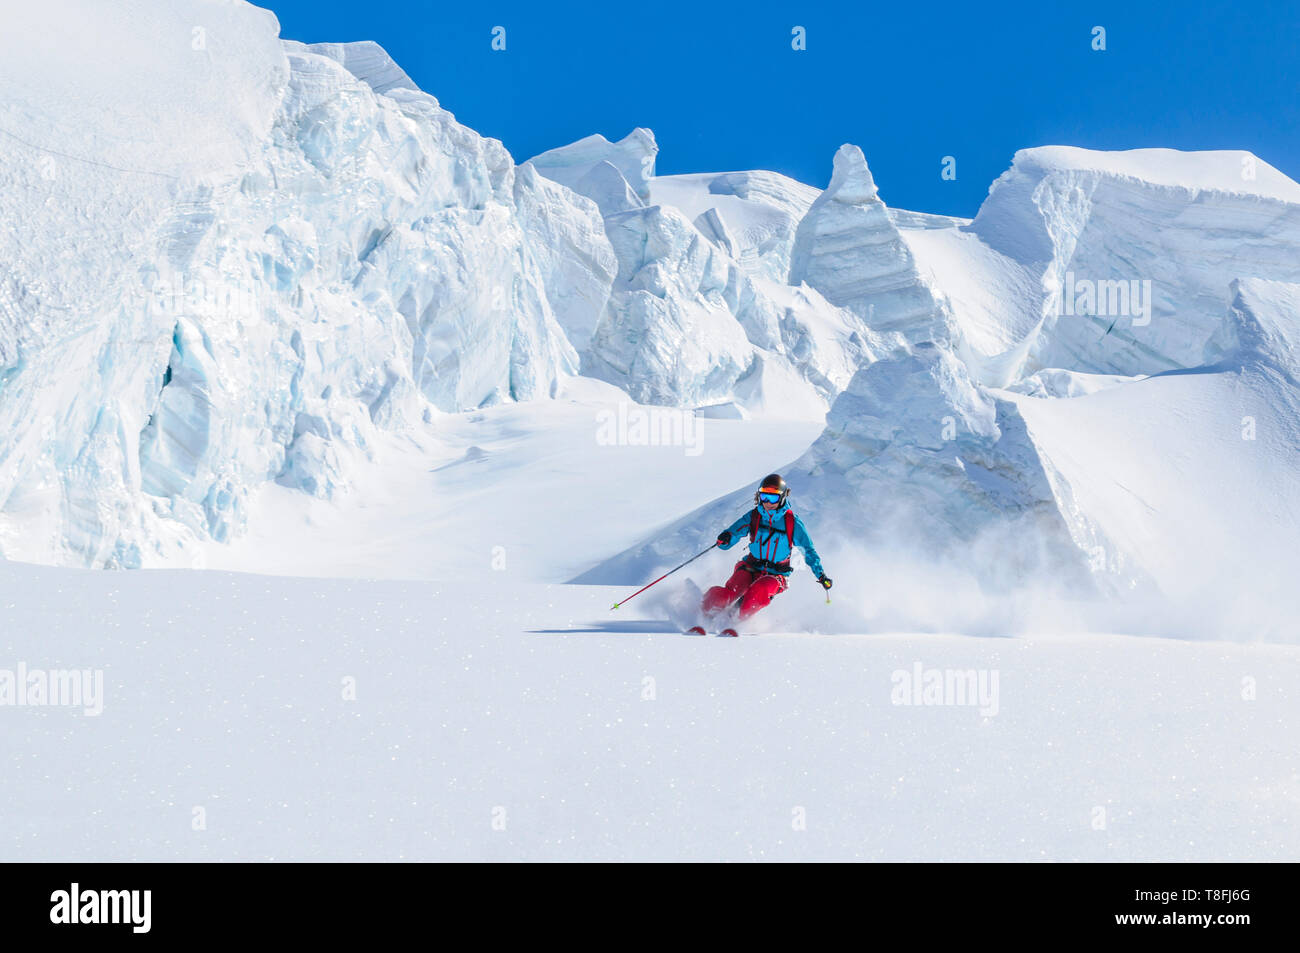 Female freeskier skiing in backcountry on fantastic Monte Rosa glaciers Stock Photo